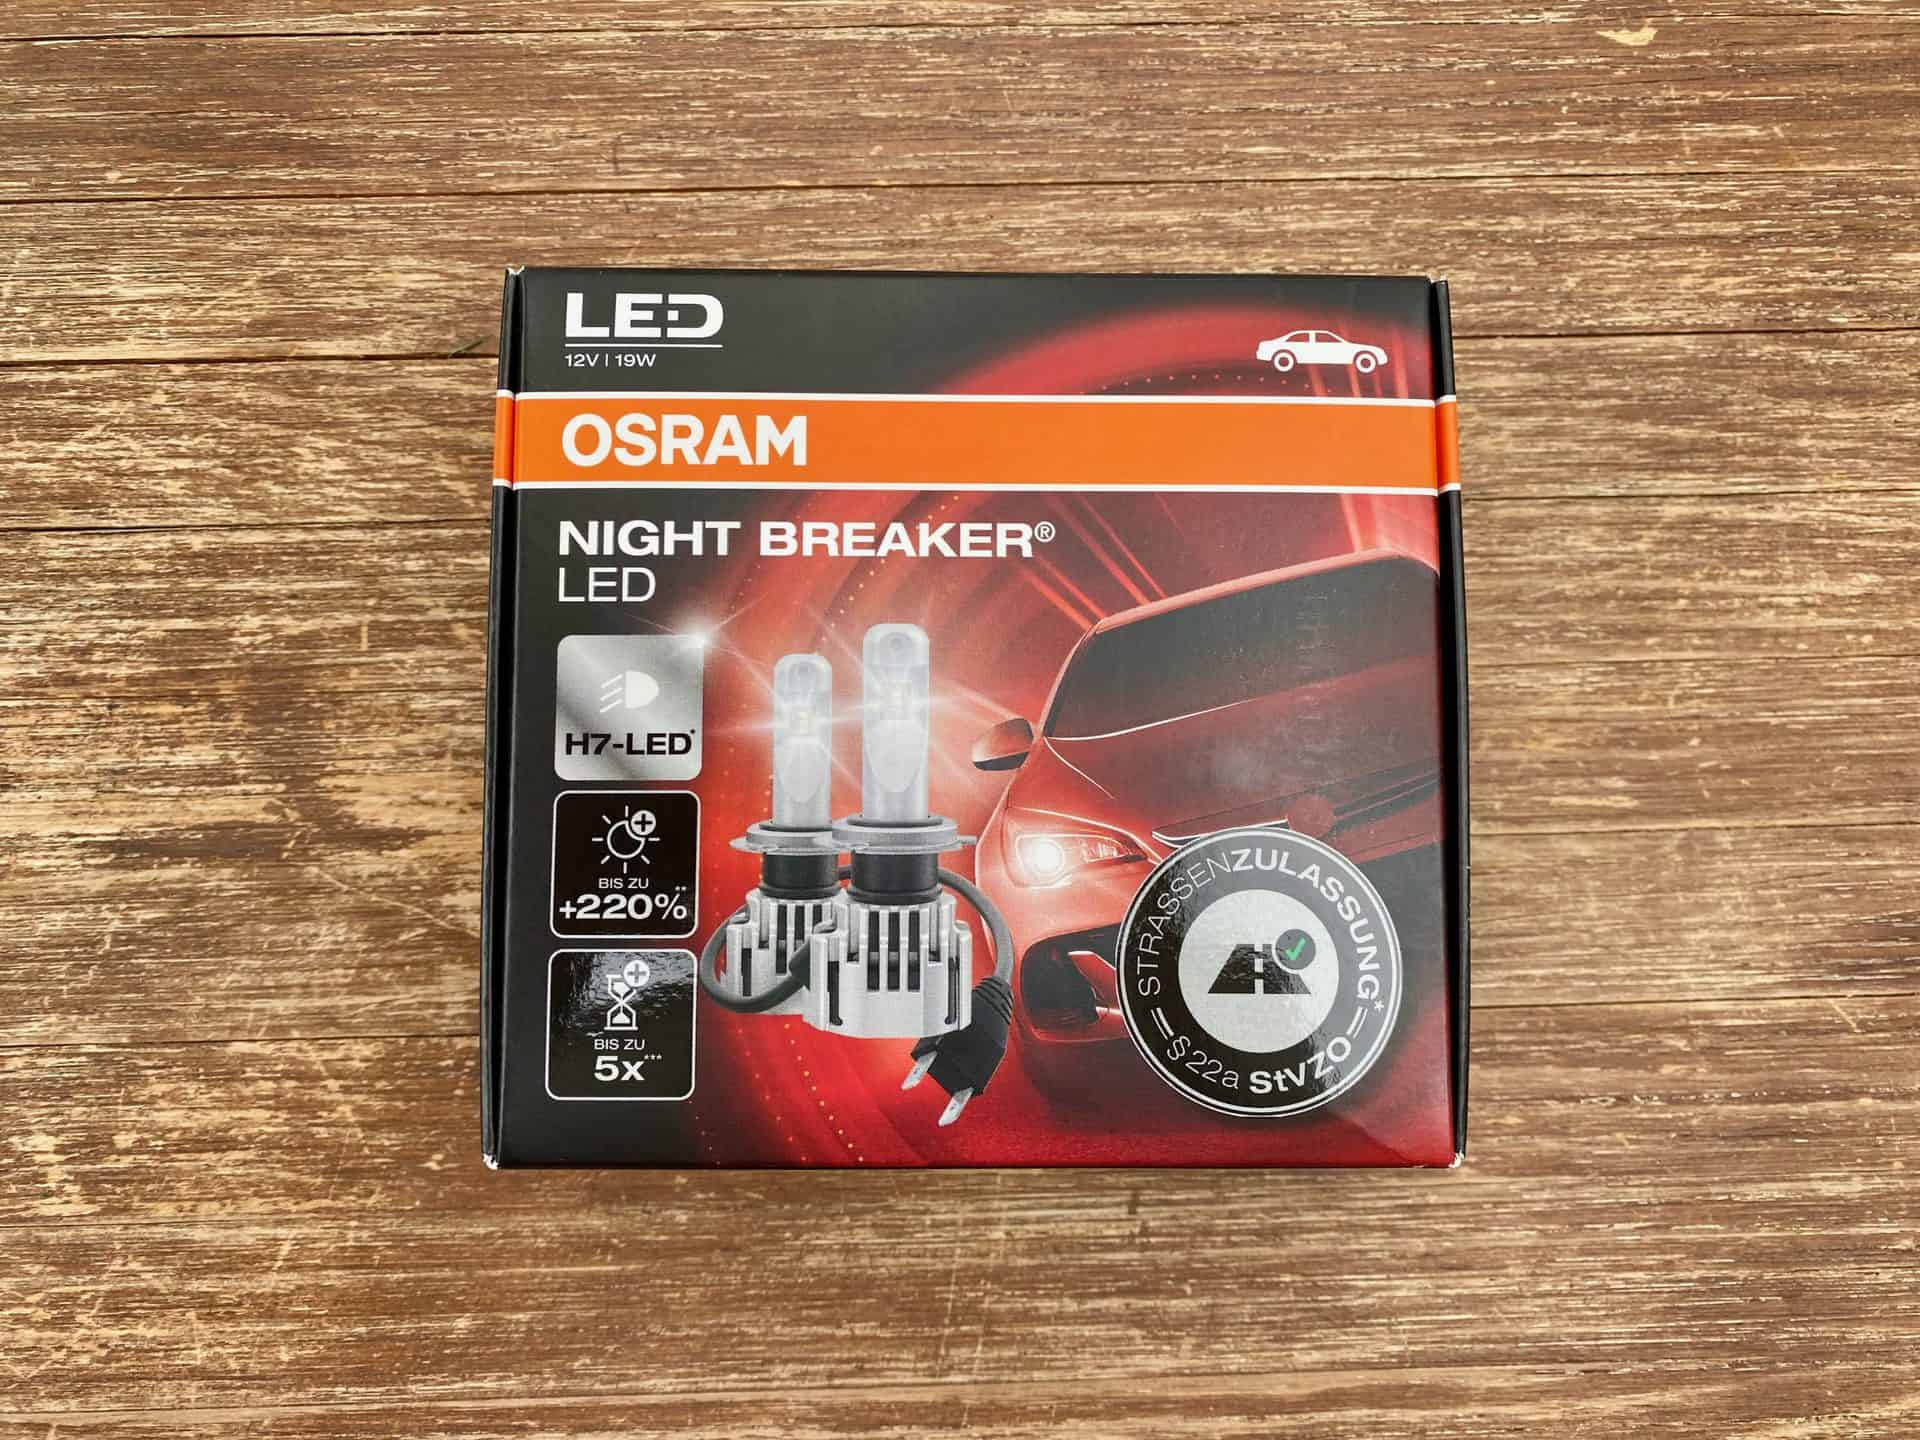 OSRAM-Nighbreaker-H7-LED-Vorderseite